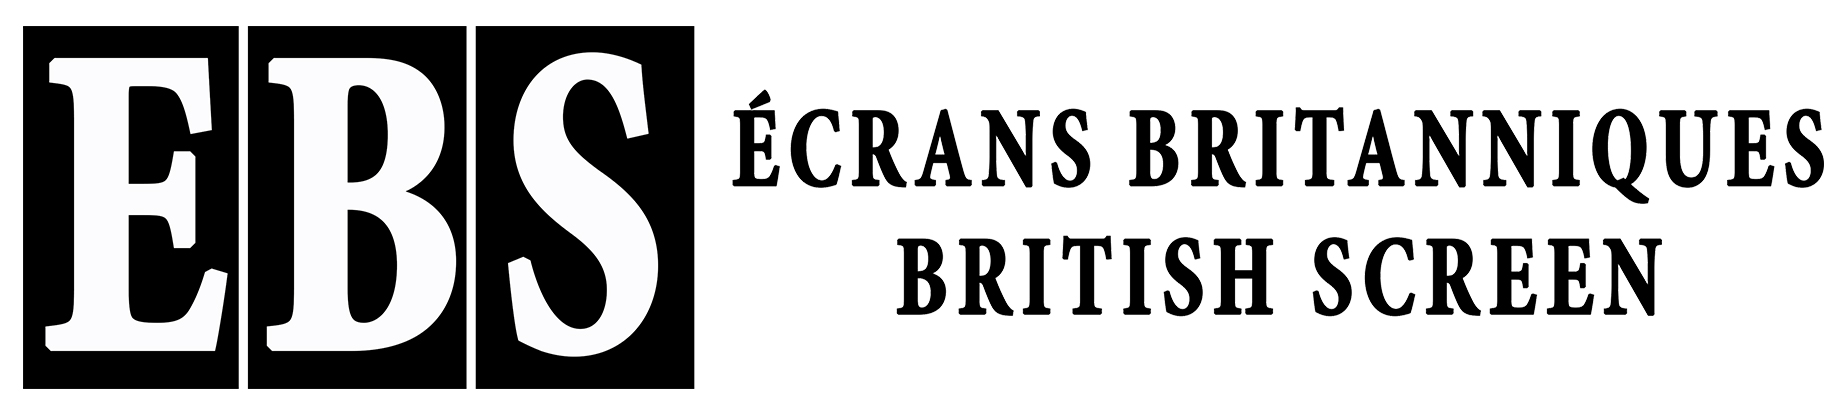 Ecrans Britanniques / British Screen